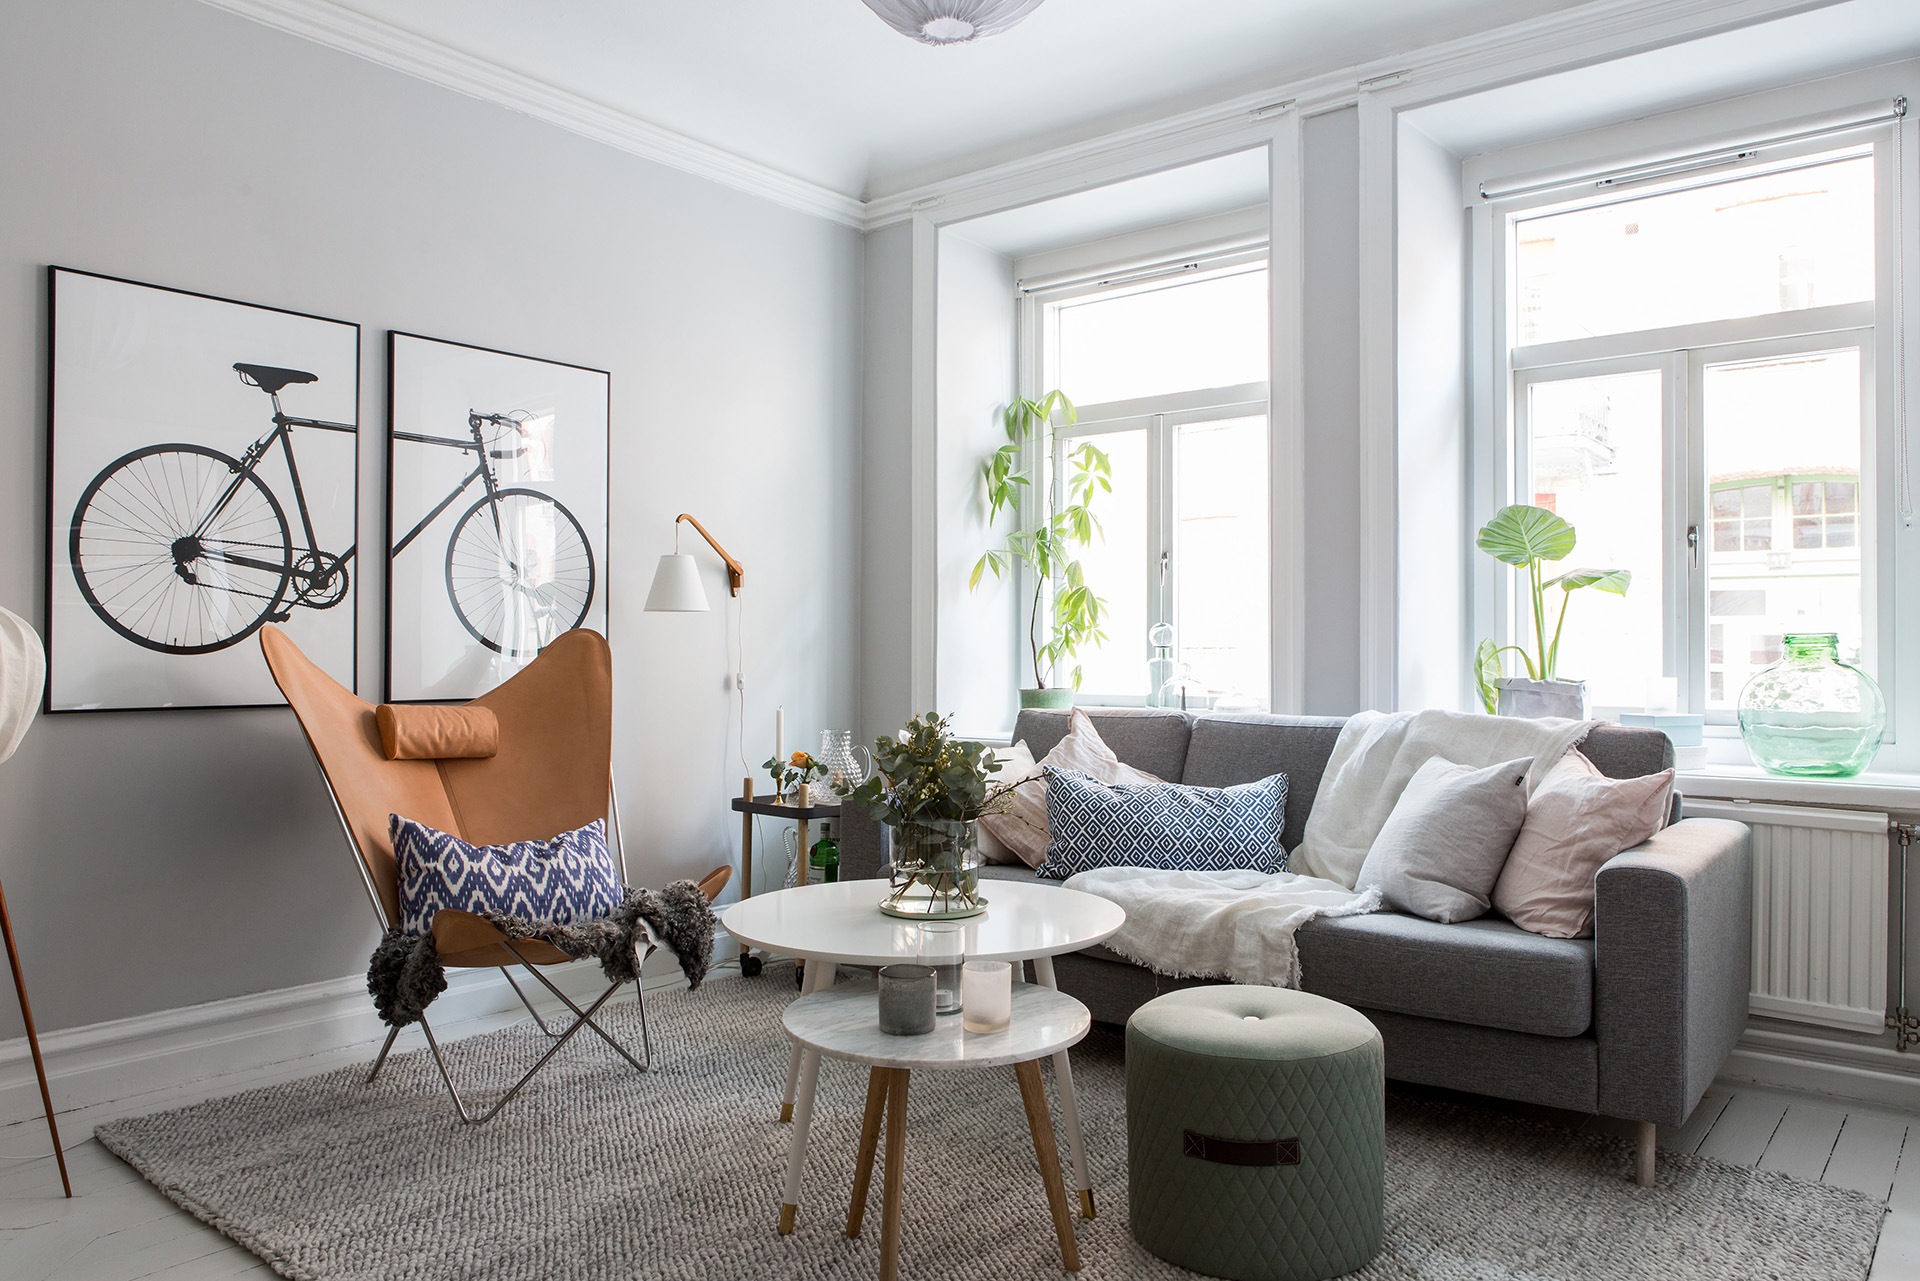 Interio Sofa Aktion Grosse Ideen Für Kleine Budgets Sweet Home